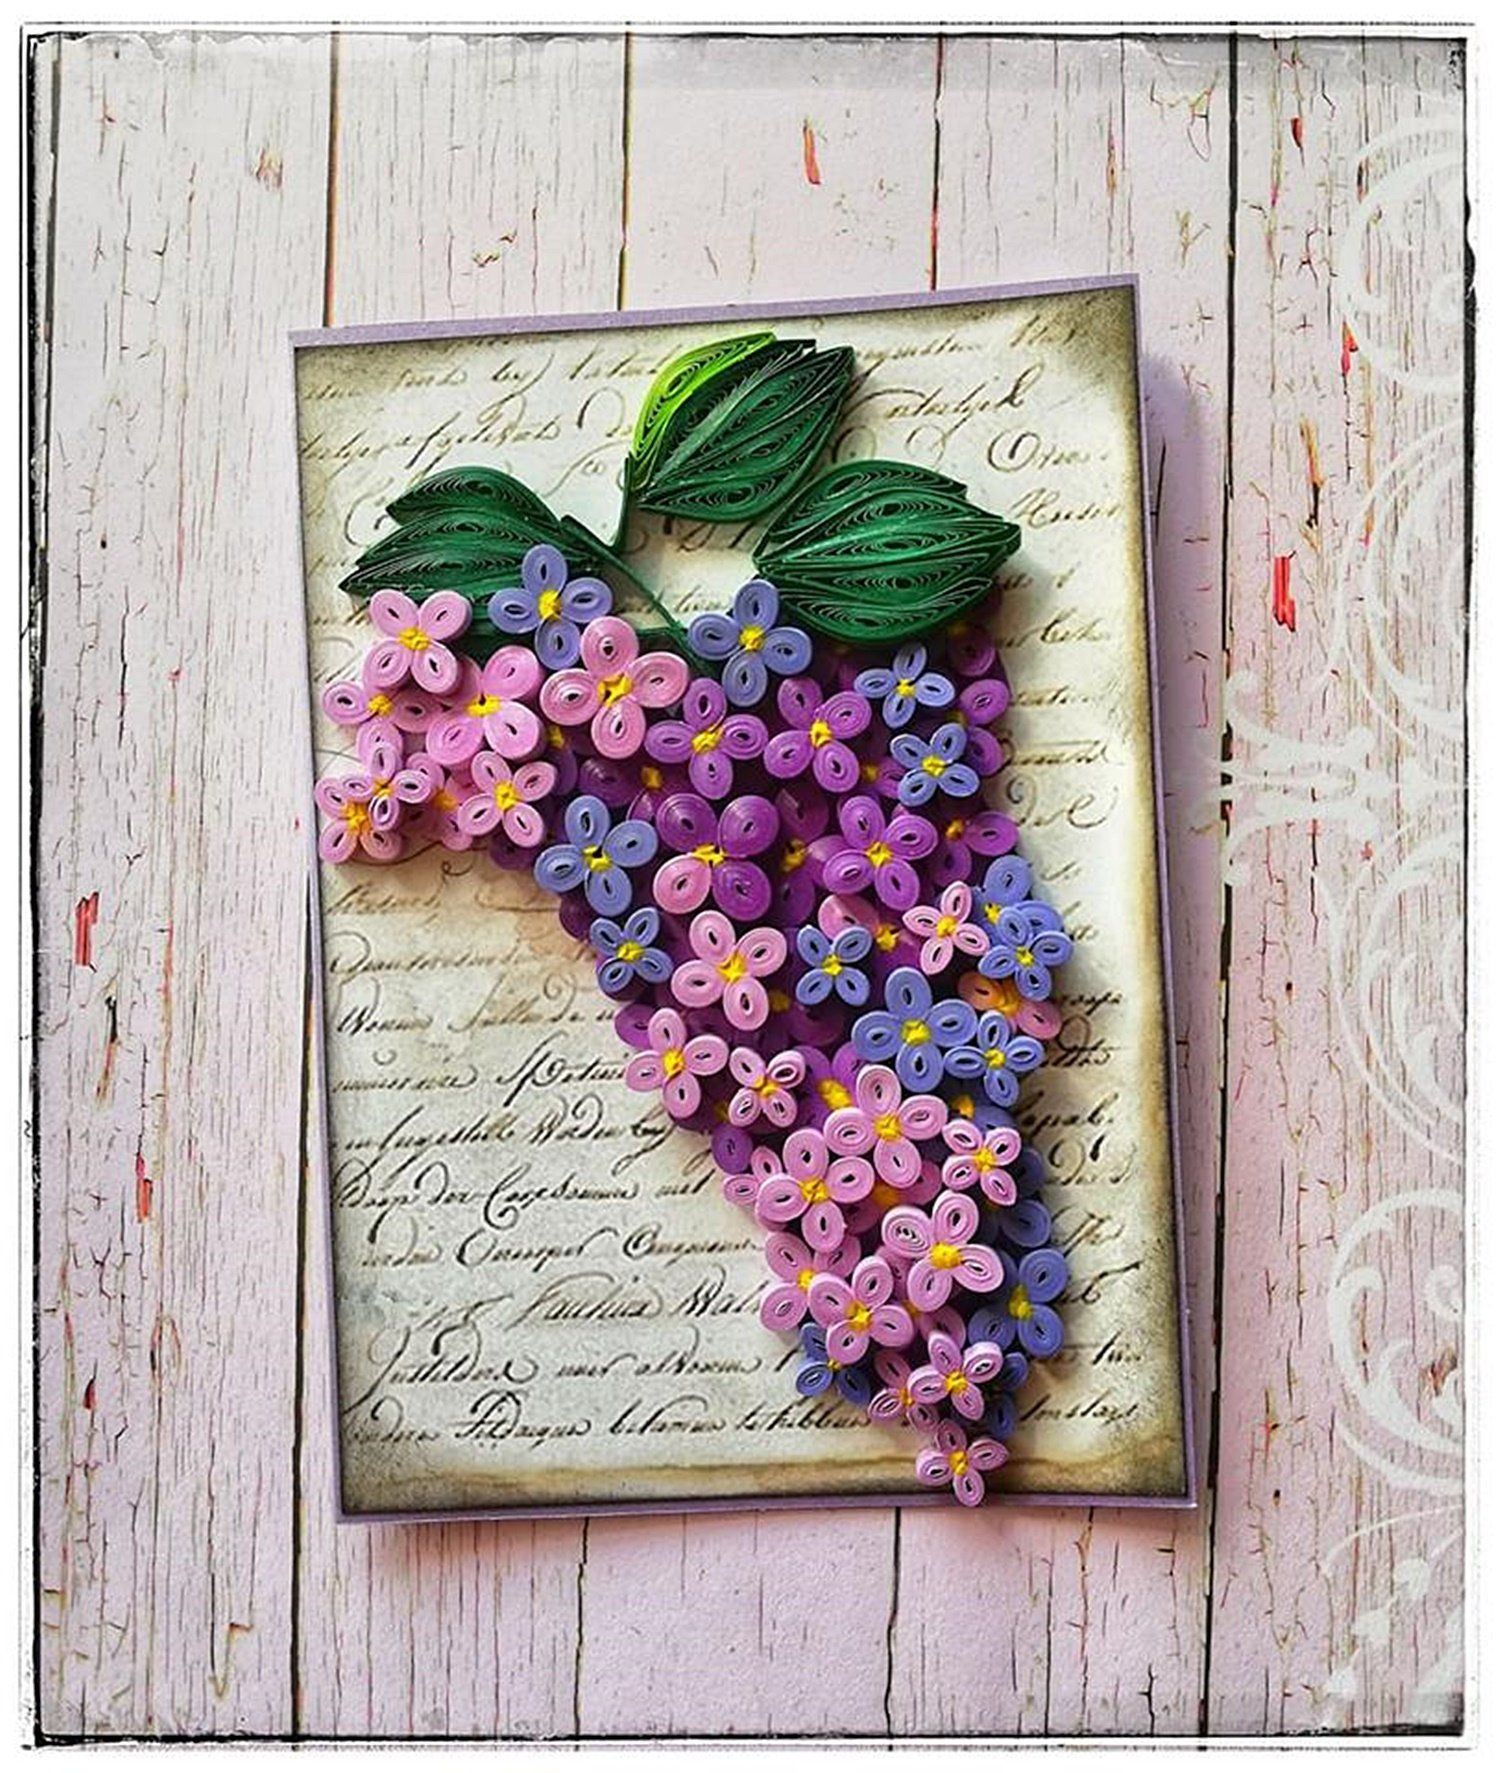 Lilac Greeting Card Cute Note Card Floral Gift For Woman Etsy Flower Birthday Cards Cards Handmade Handmade Personalized Gifts